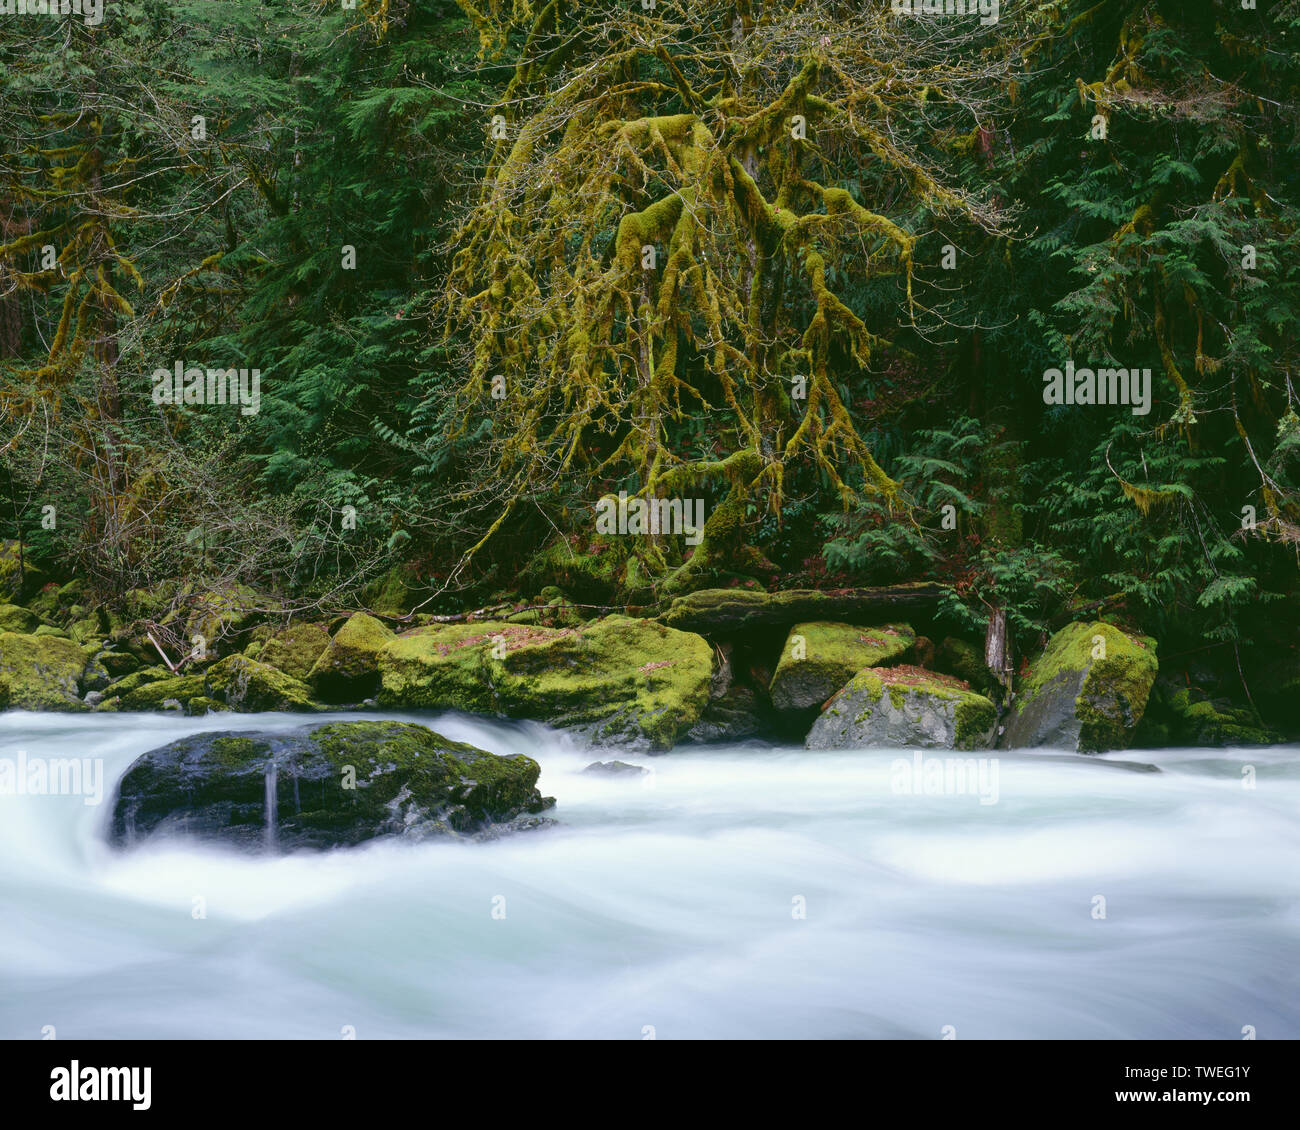 USA, Washington, Olympic National Park, Maple and conifers line bank above North Fork Skokomish River which is swollen from spring runoff. - Stock Image